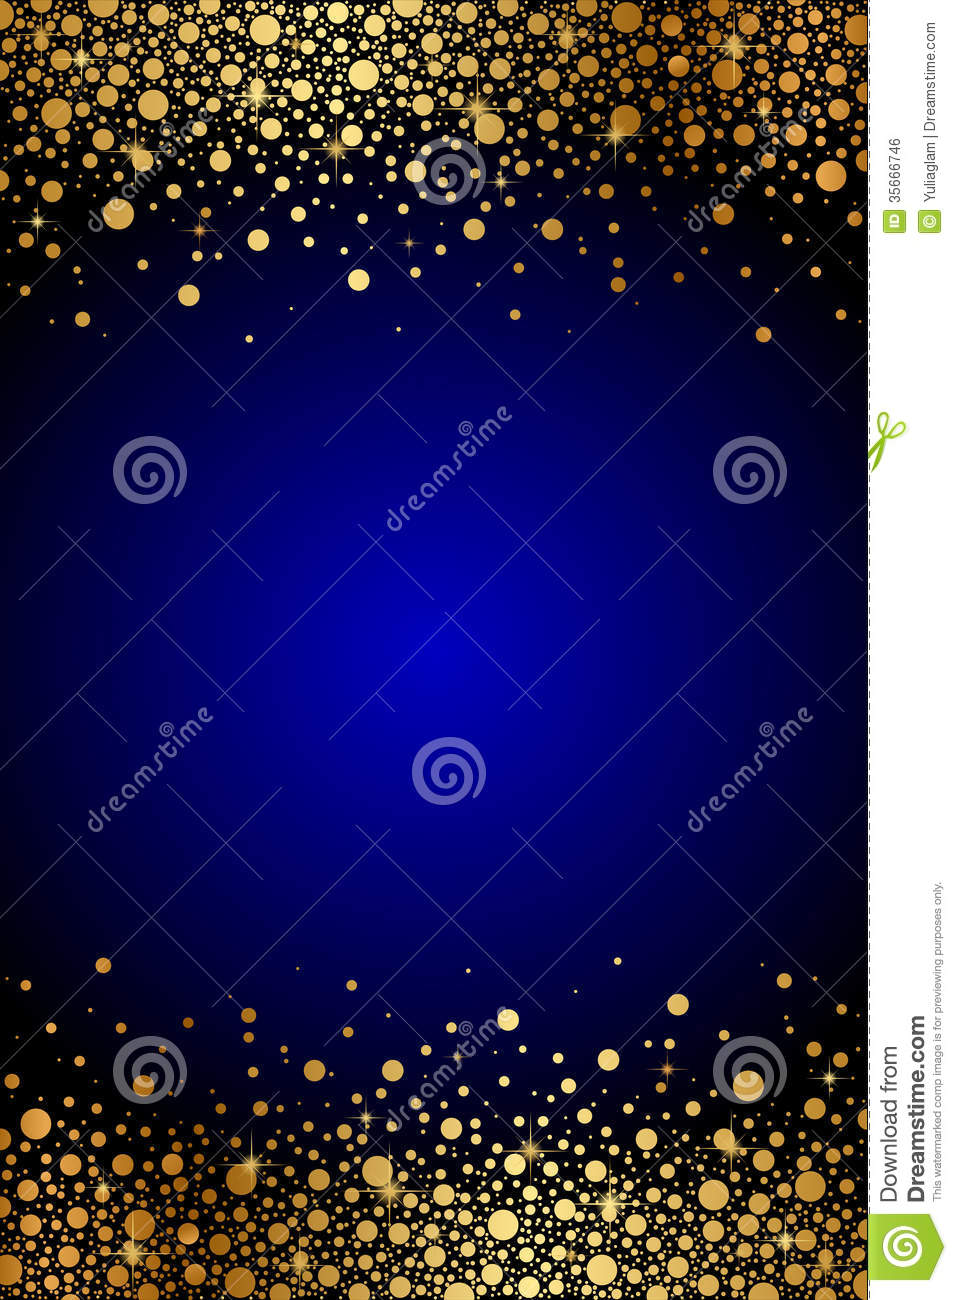 blue background with gold sparkles royalty free stock